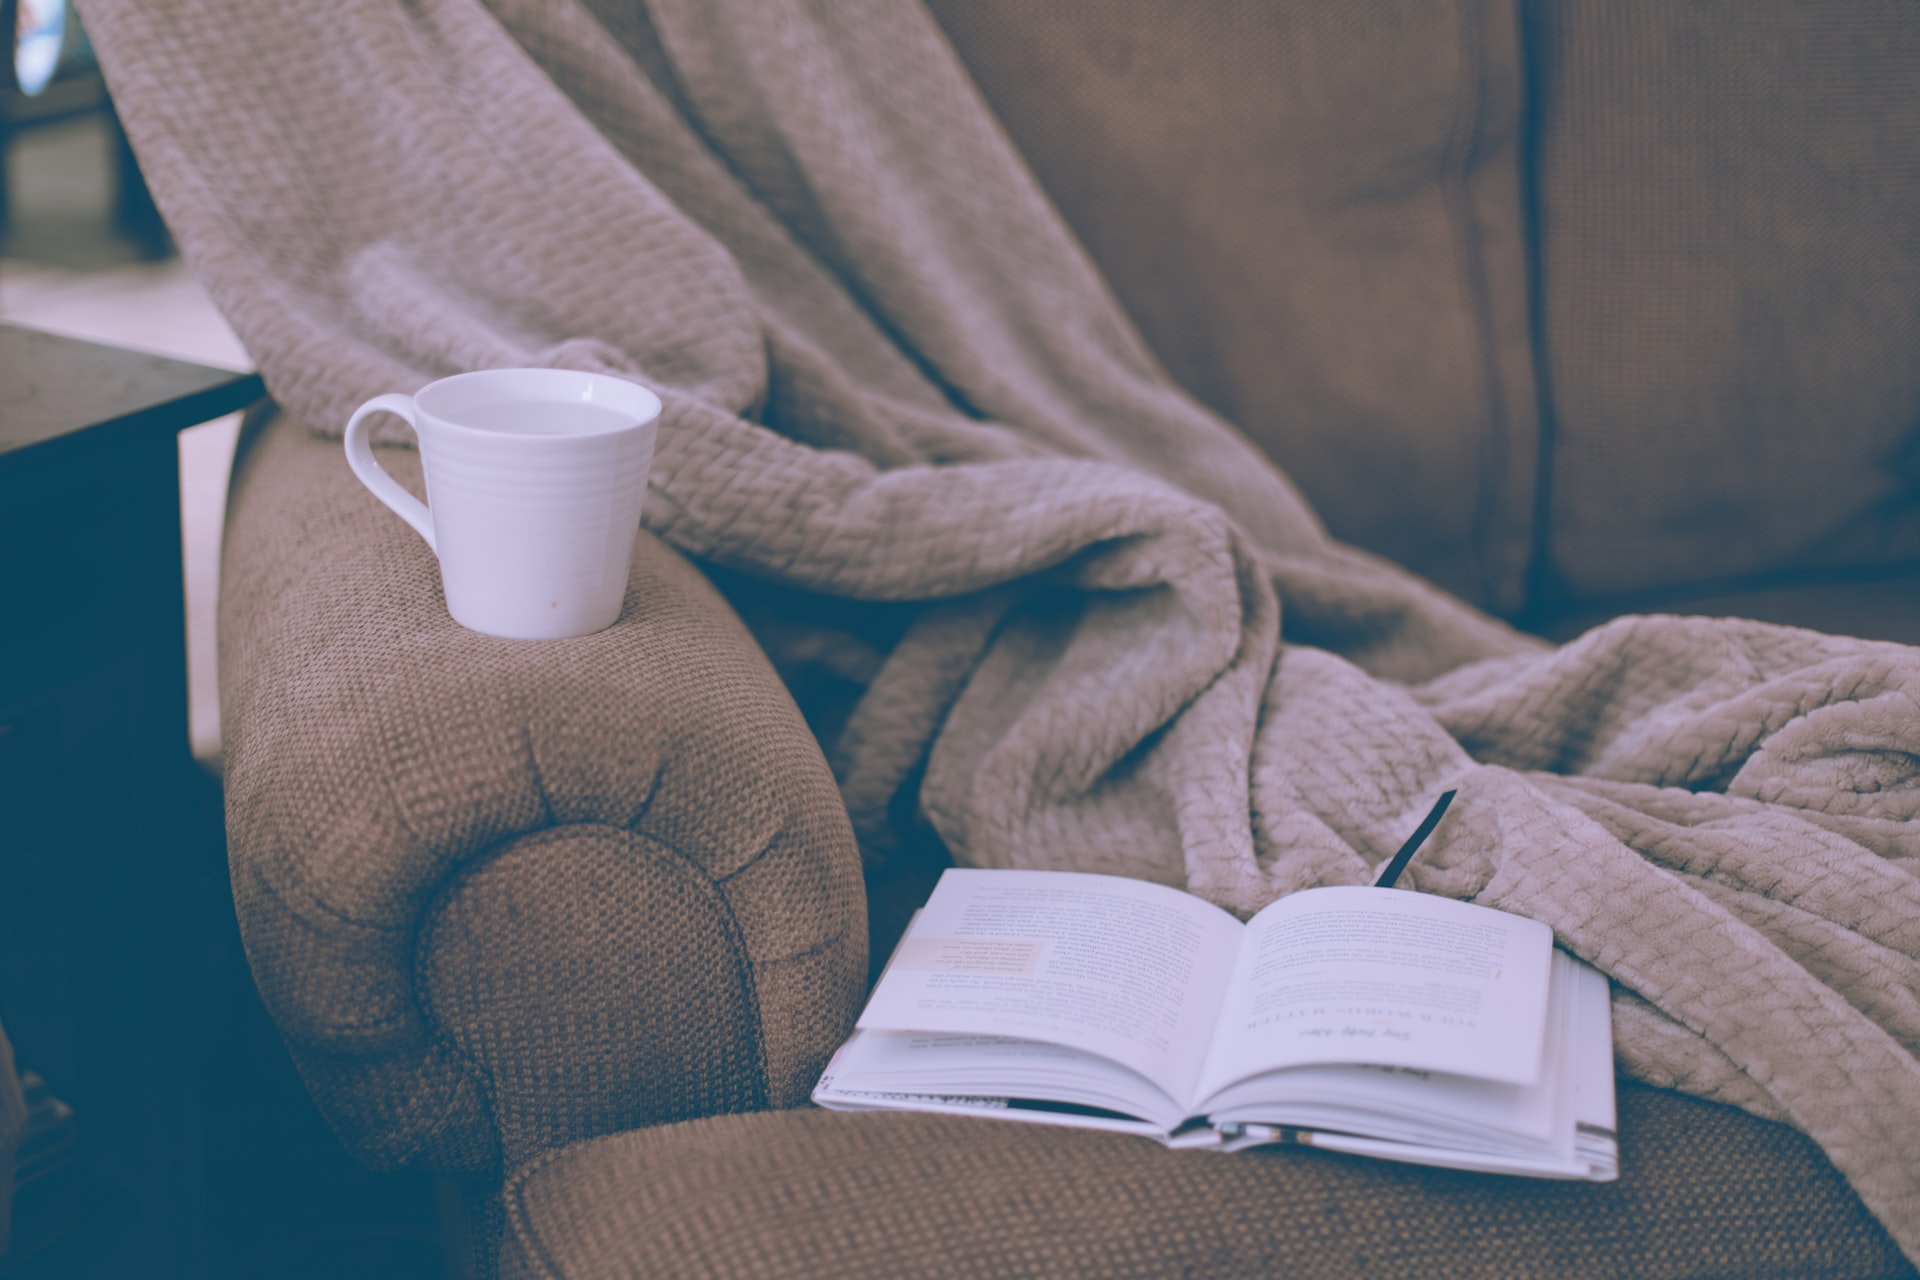 how to maintain a self care routine